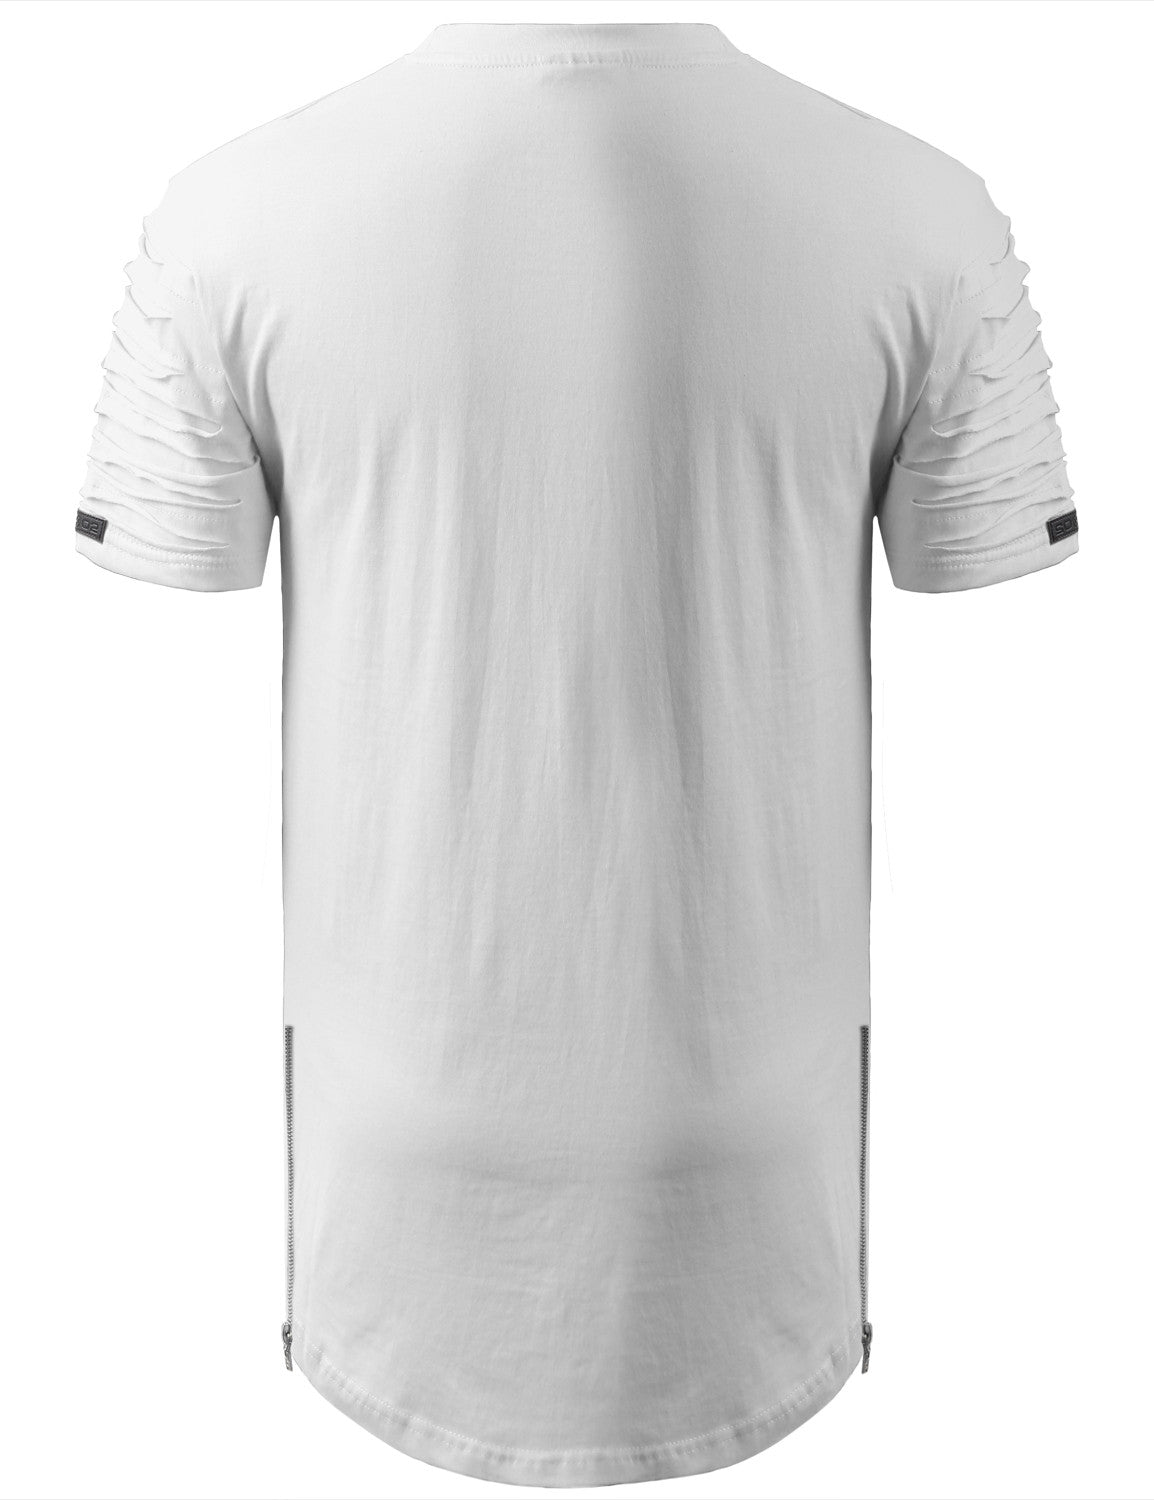 WHITE Ripped Chest Pocket Longline Crewneck Tshirts